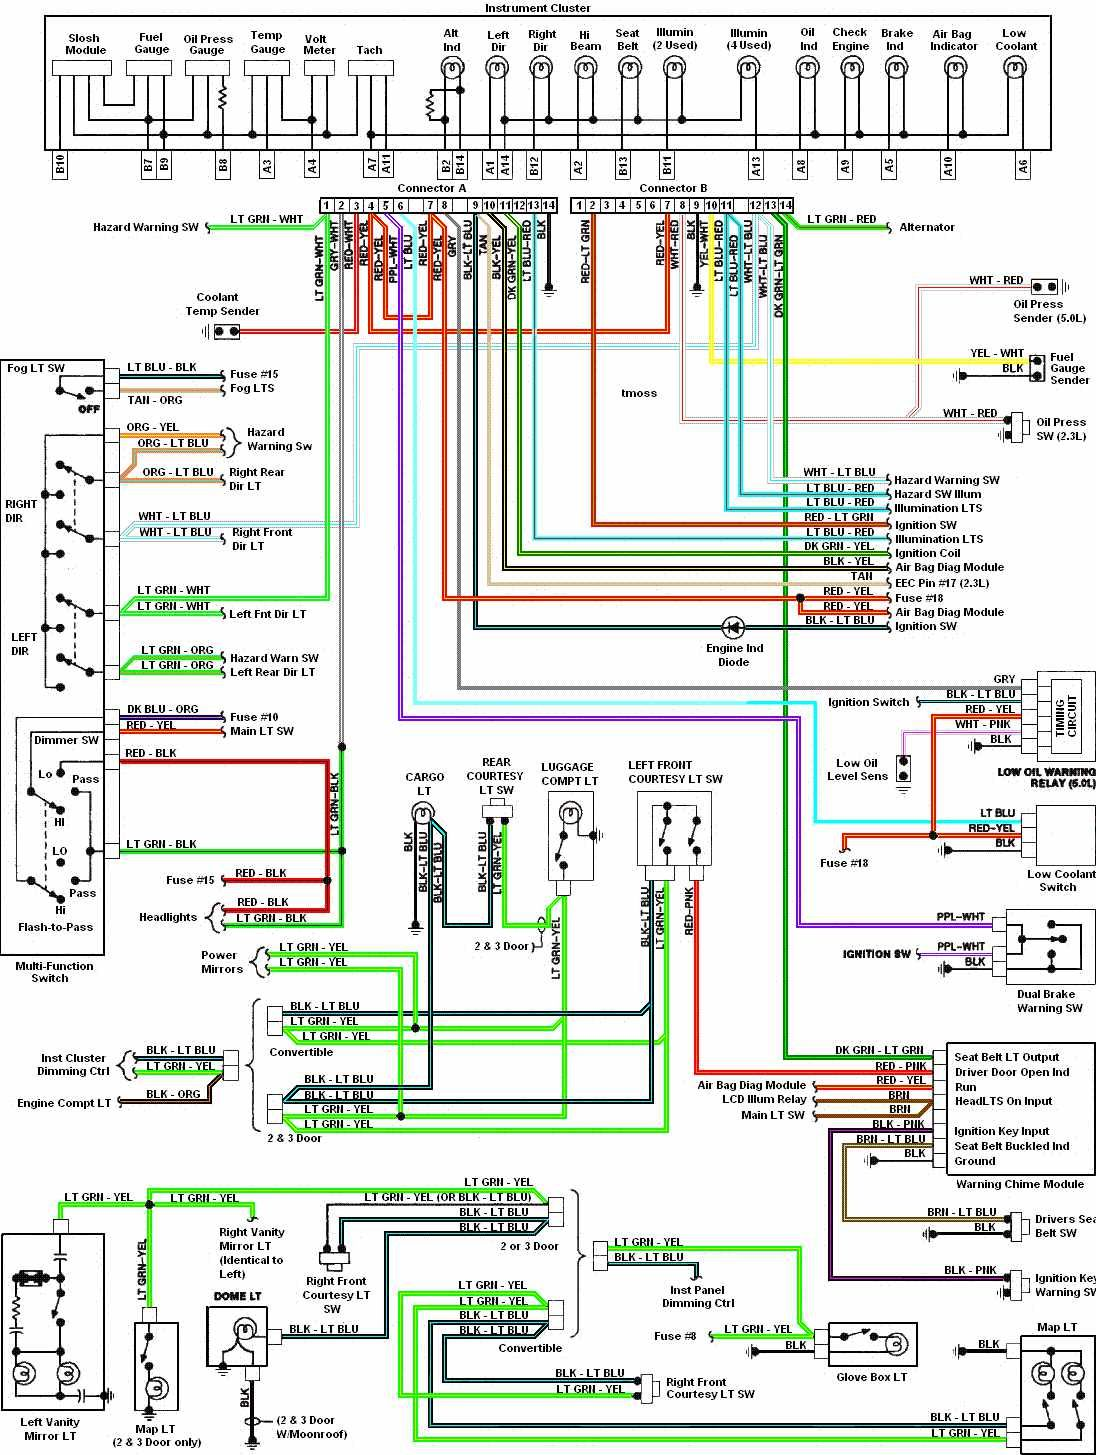 hight resolution of 2003 camry fuse box diagram under dash mustang images gallery 2003 mustang gt gauge wiring